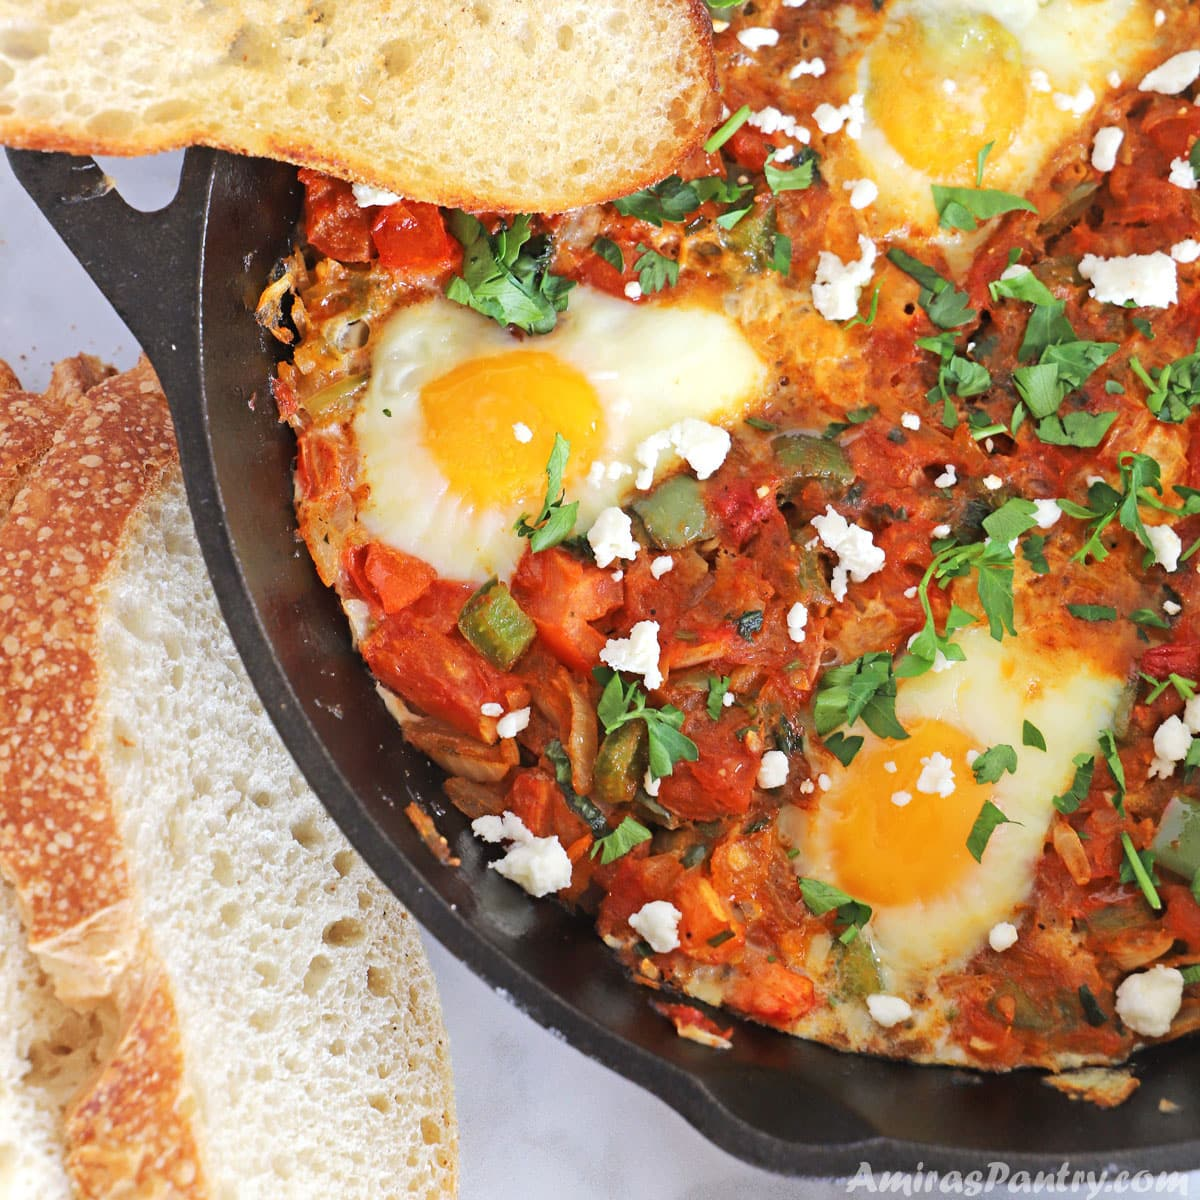 A cast iron with eggs poached in tomato sauce and feta crumbled on top.